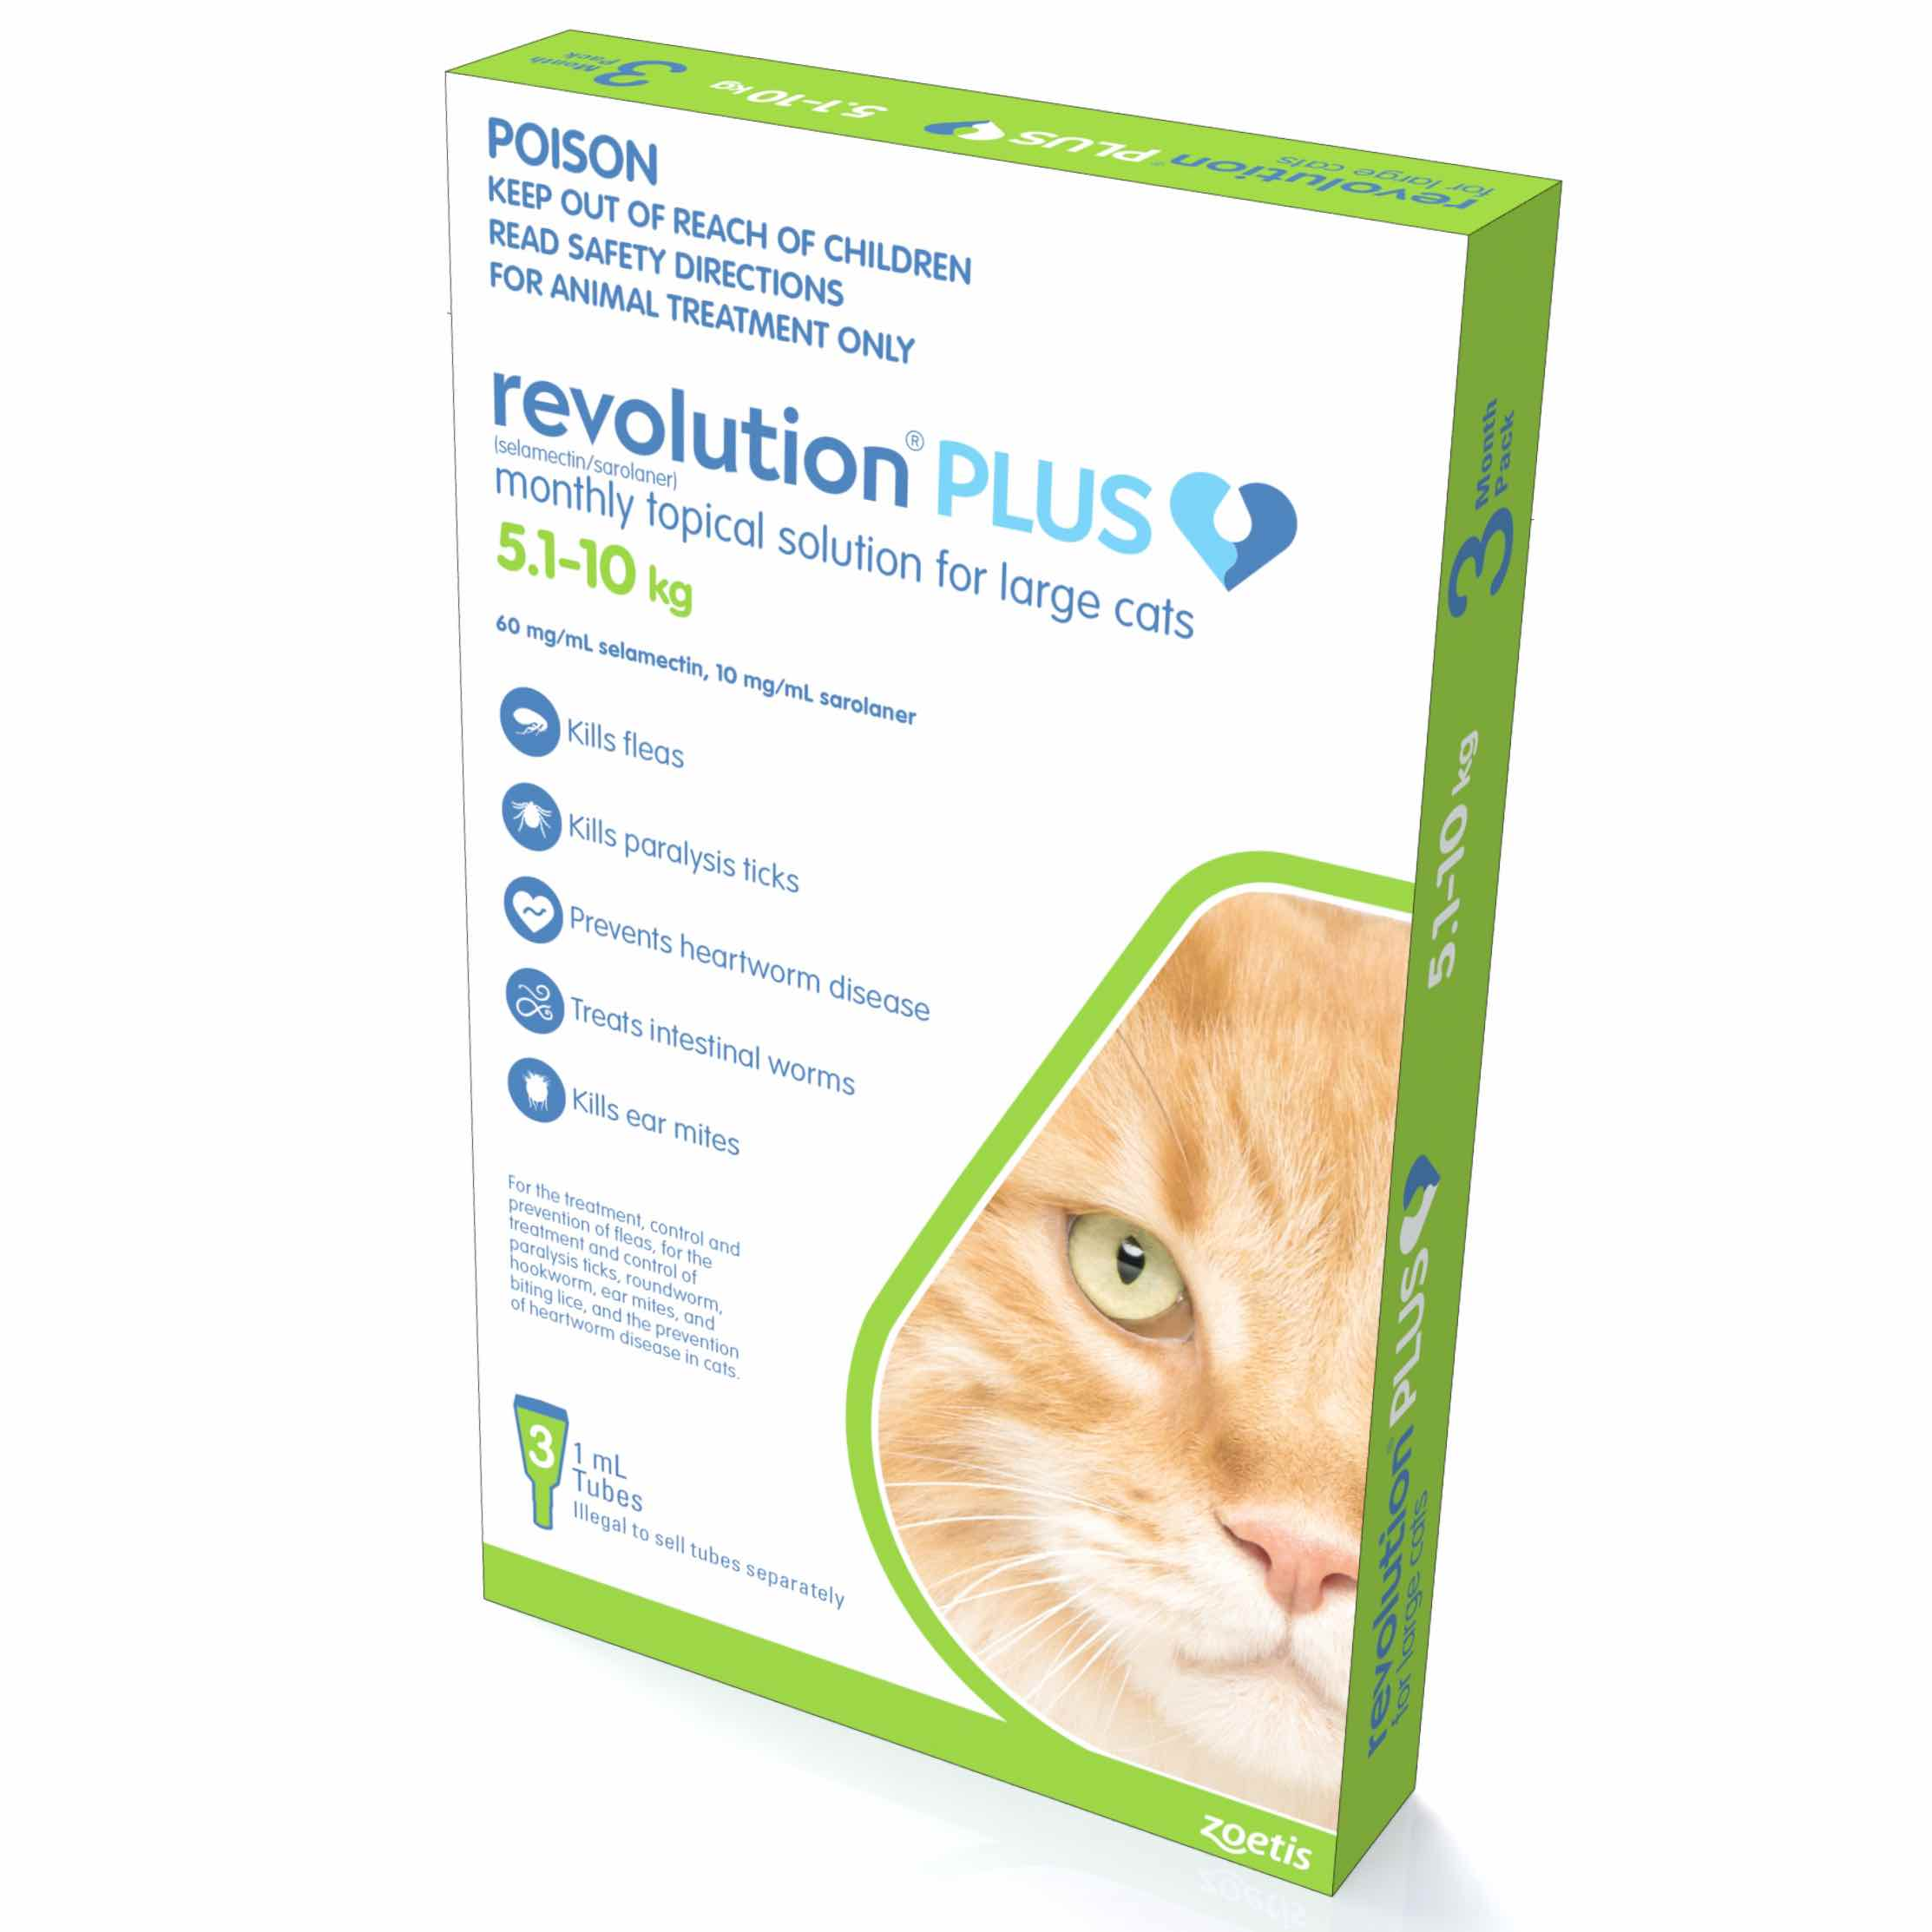 Revolution Plus For Large Cats 5 10 Kg 11 1 22 Lbs Green 3 Doses Atlantic Pet Products